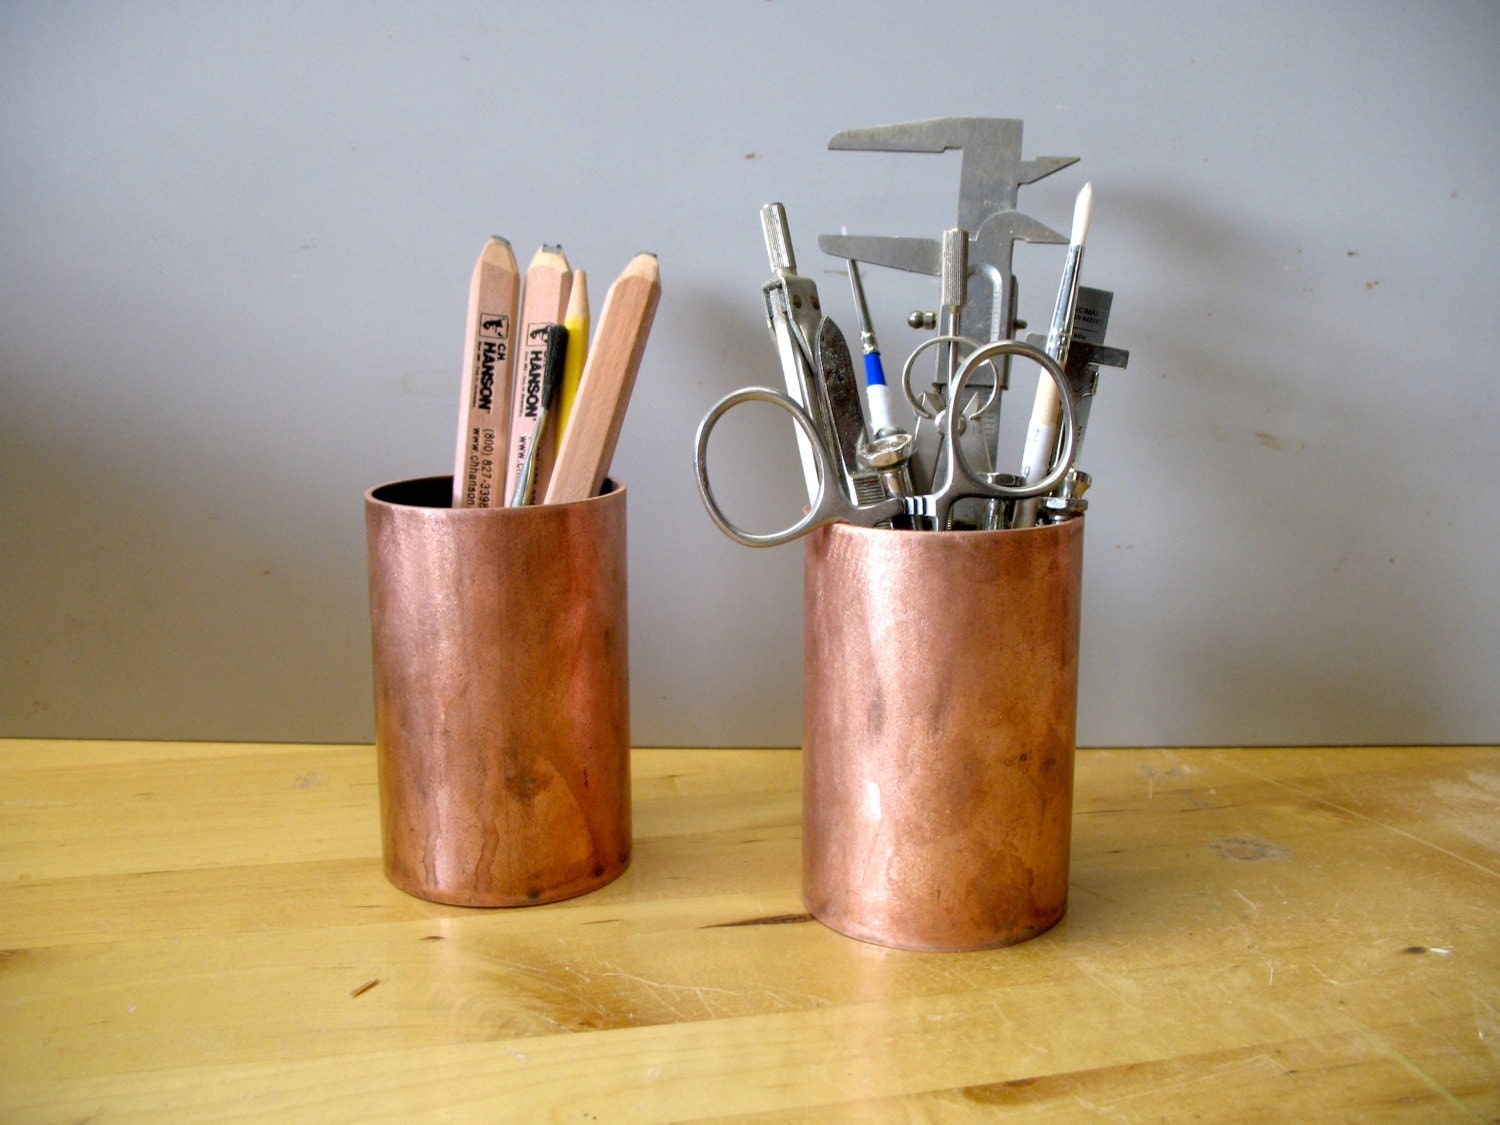 Pencil Holder Desk Accessory of Upcycled Copper Pipe by